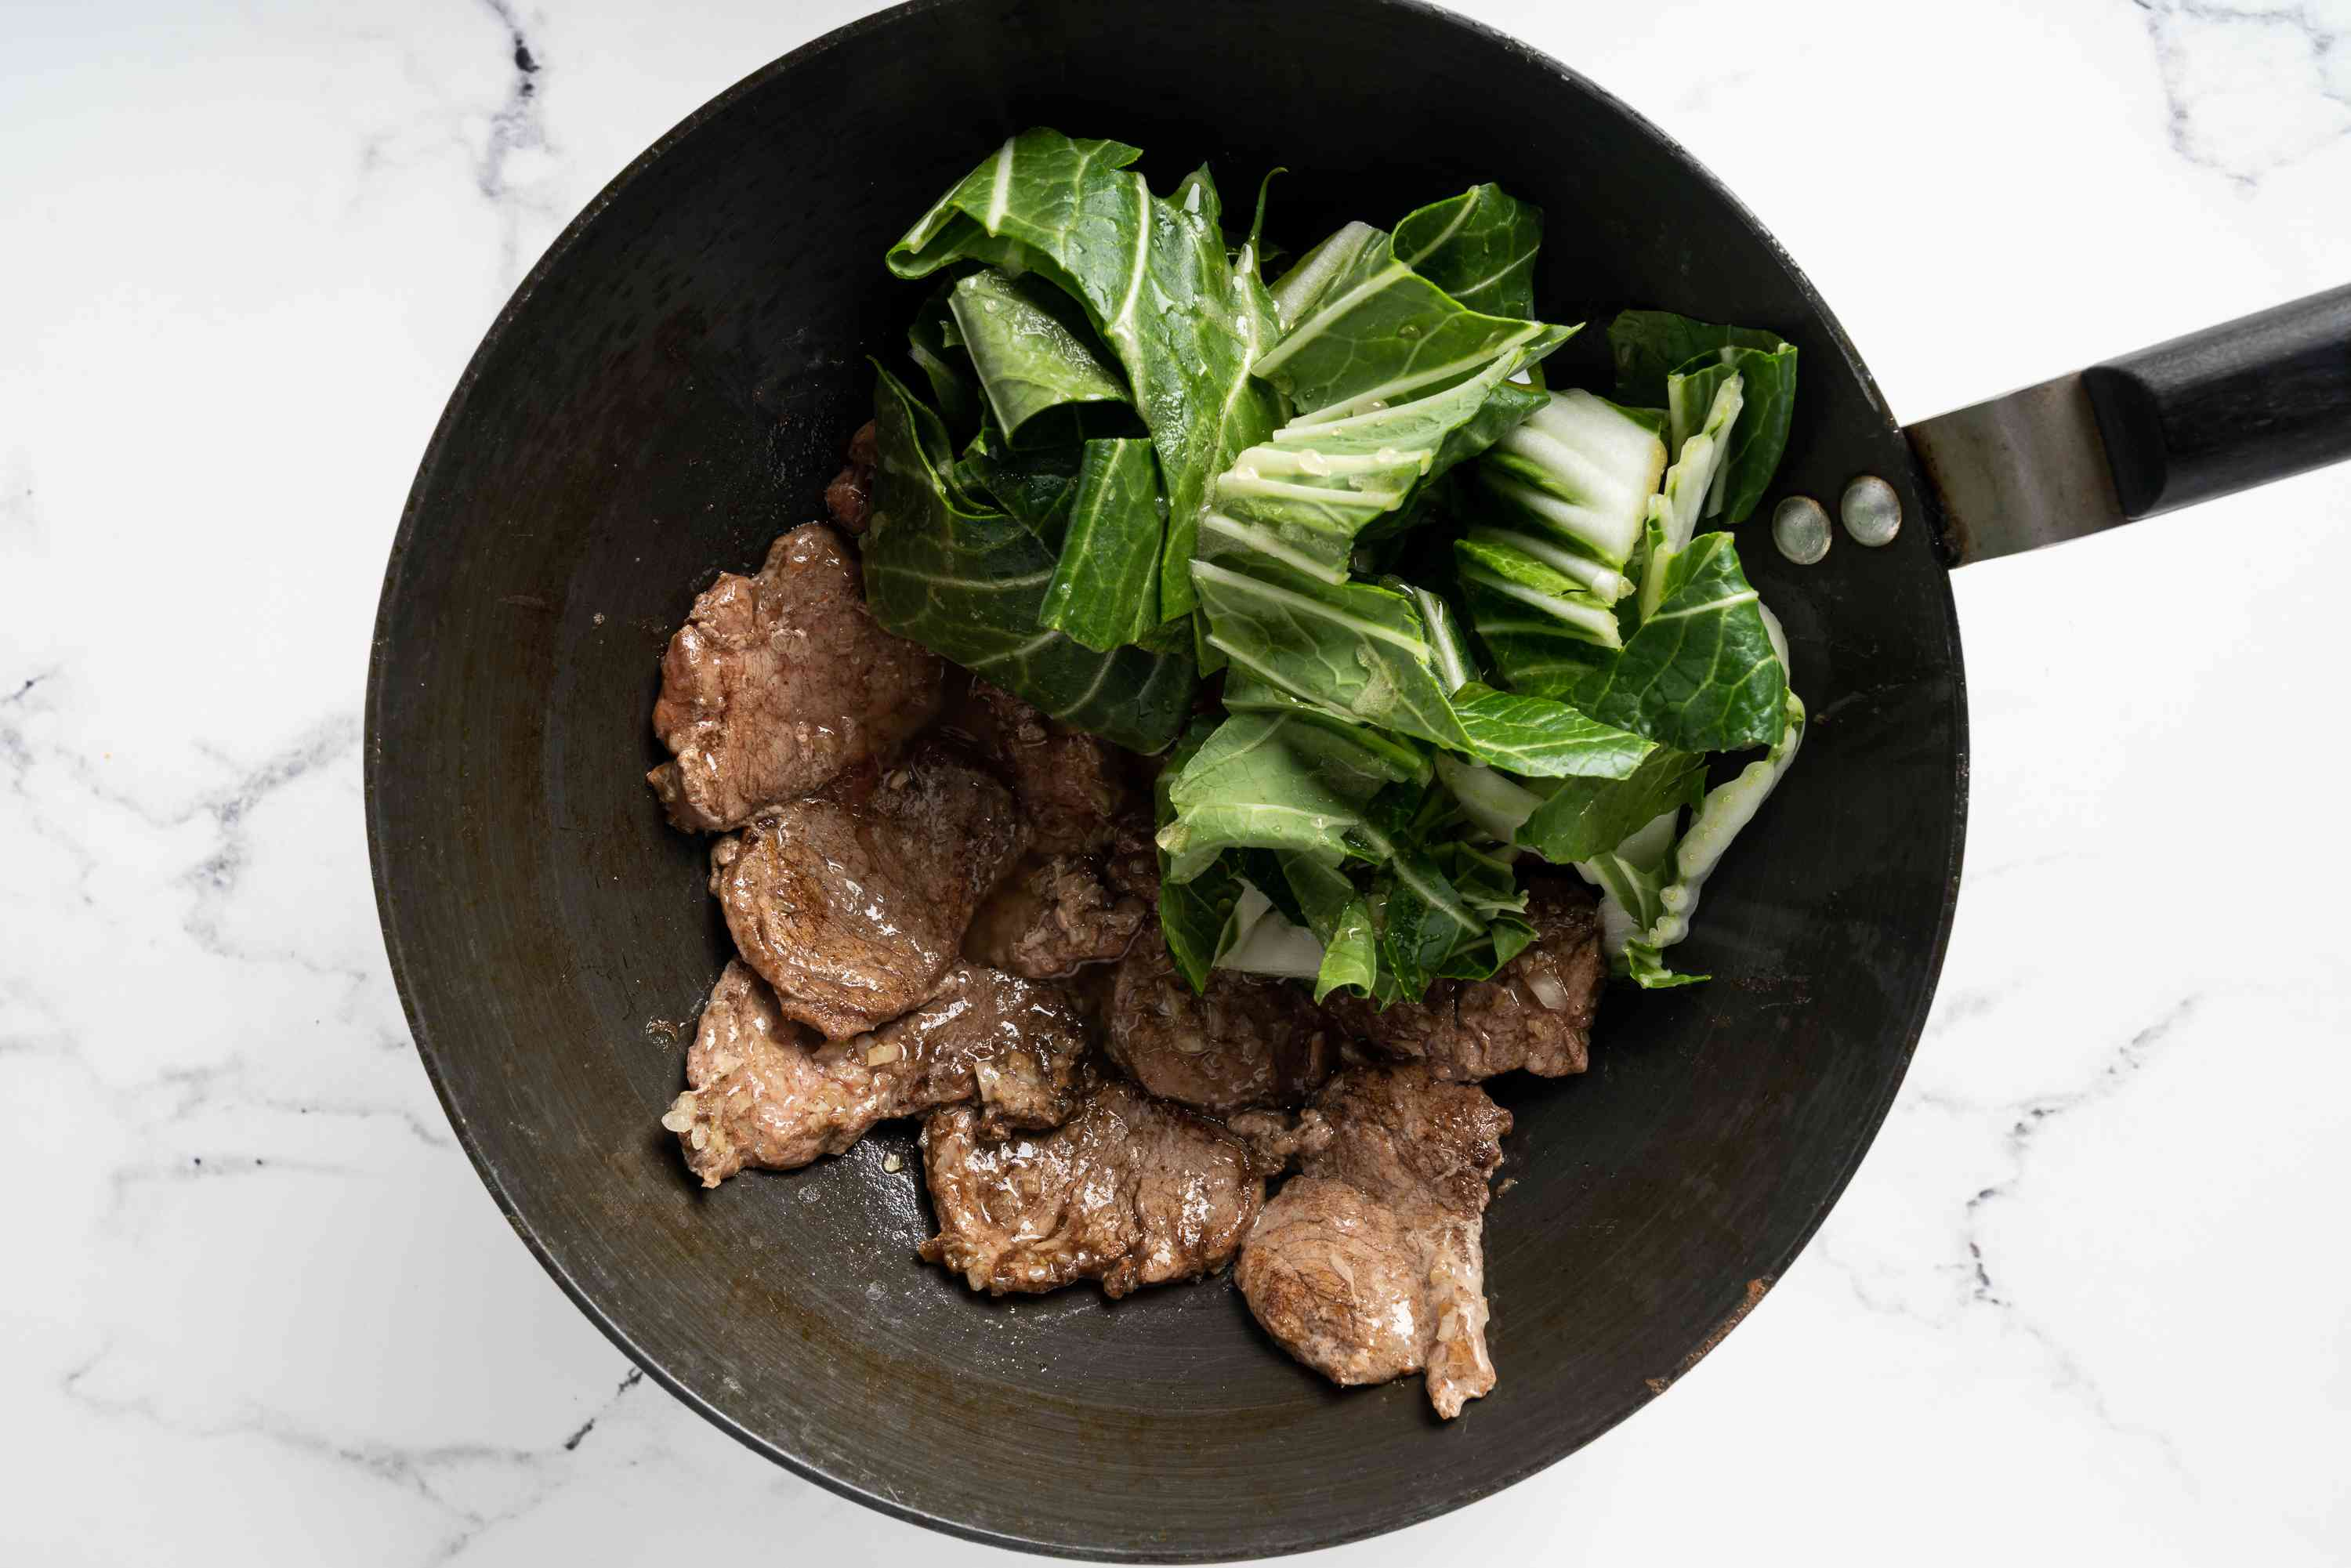 pork and bok choy cooking in a pan